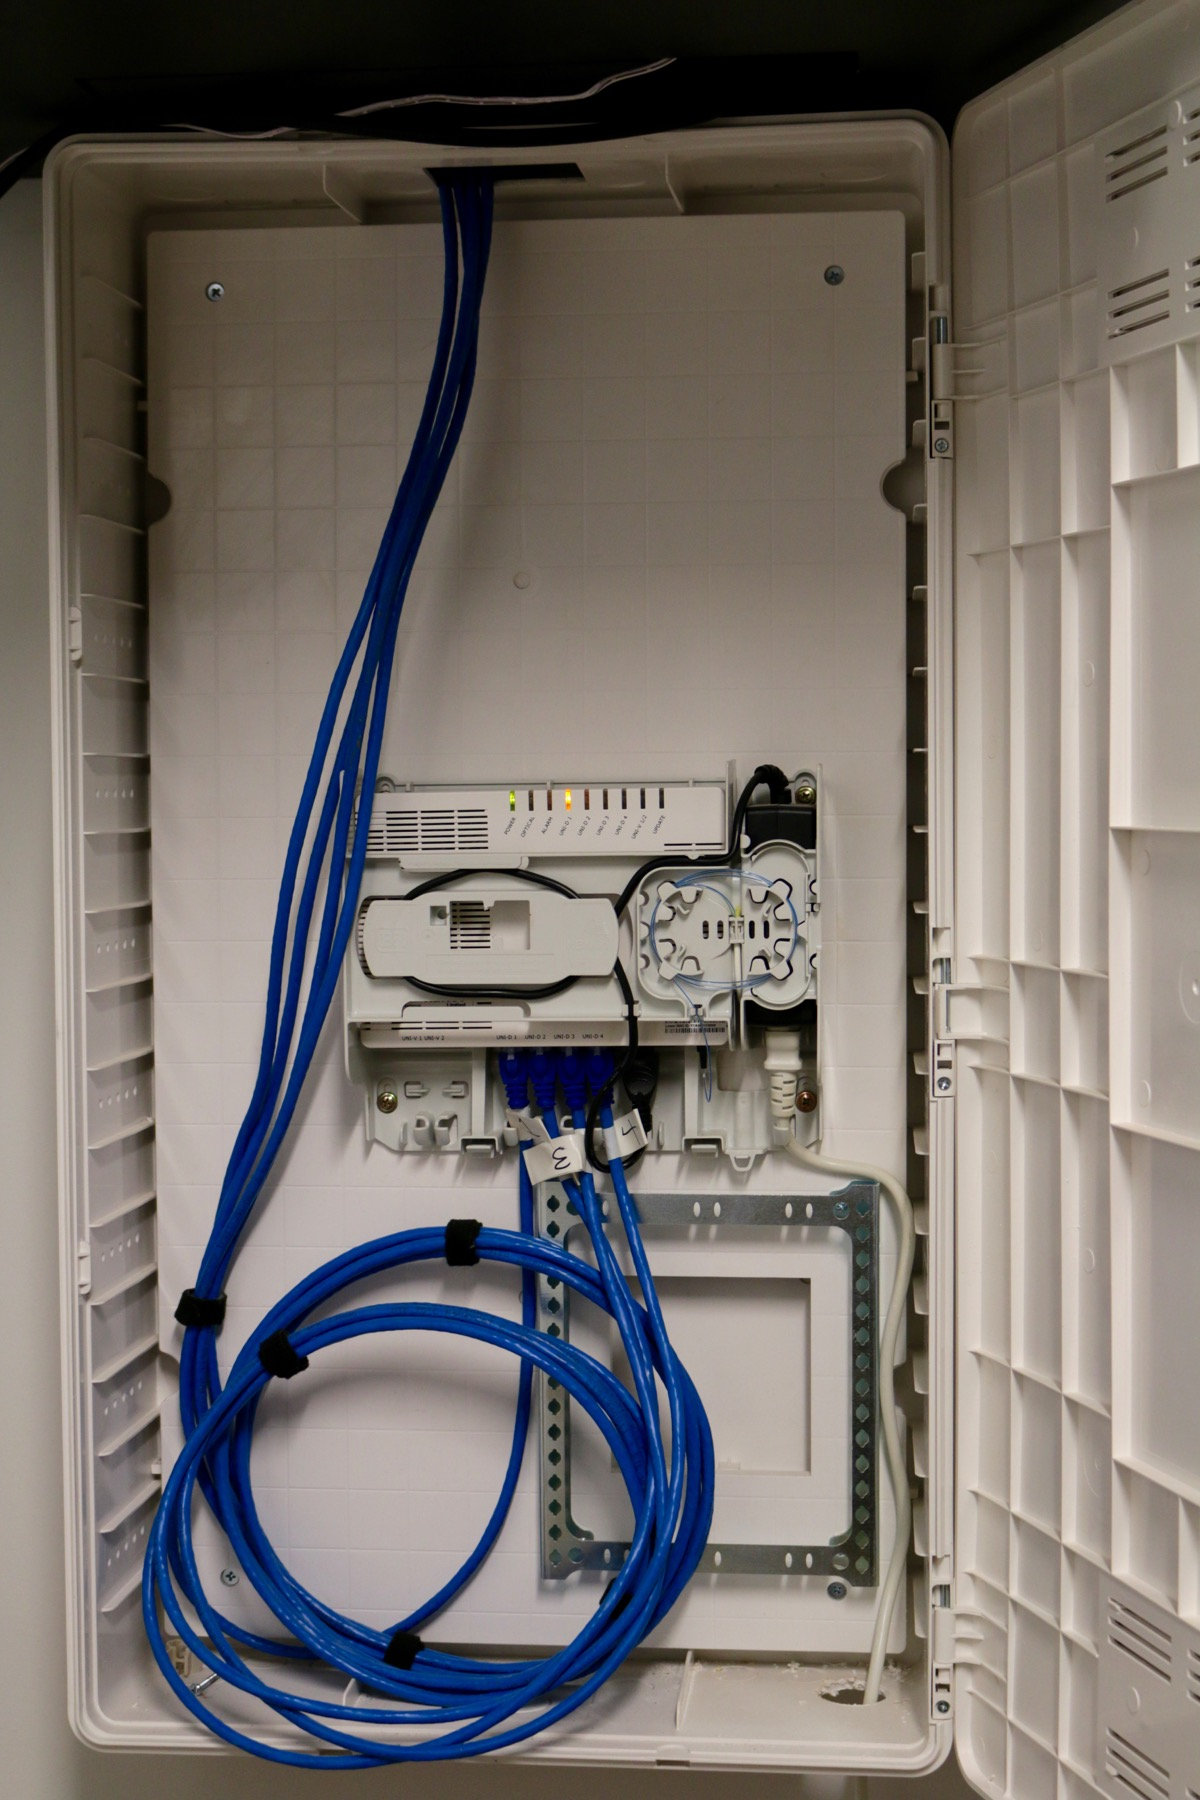 Wiring Up A New House With Ethernet A Walk Through